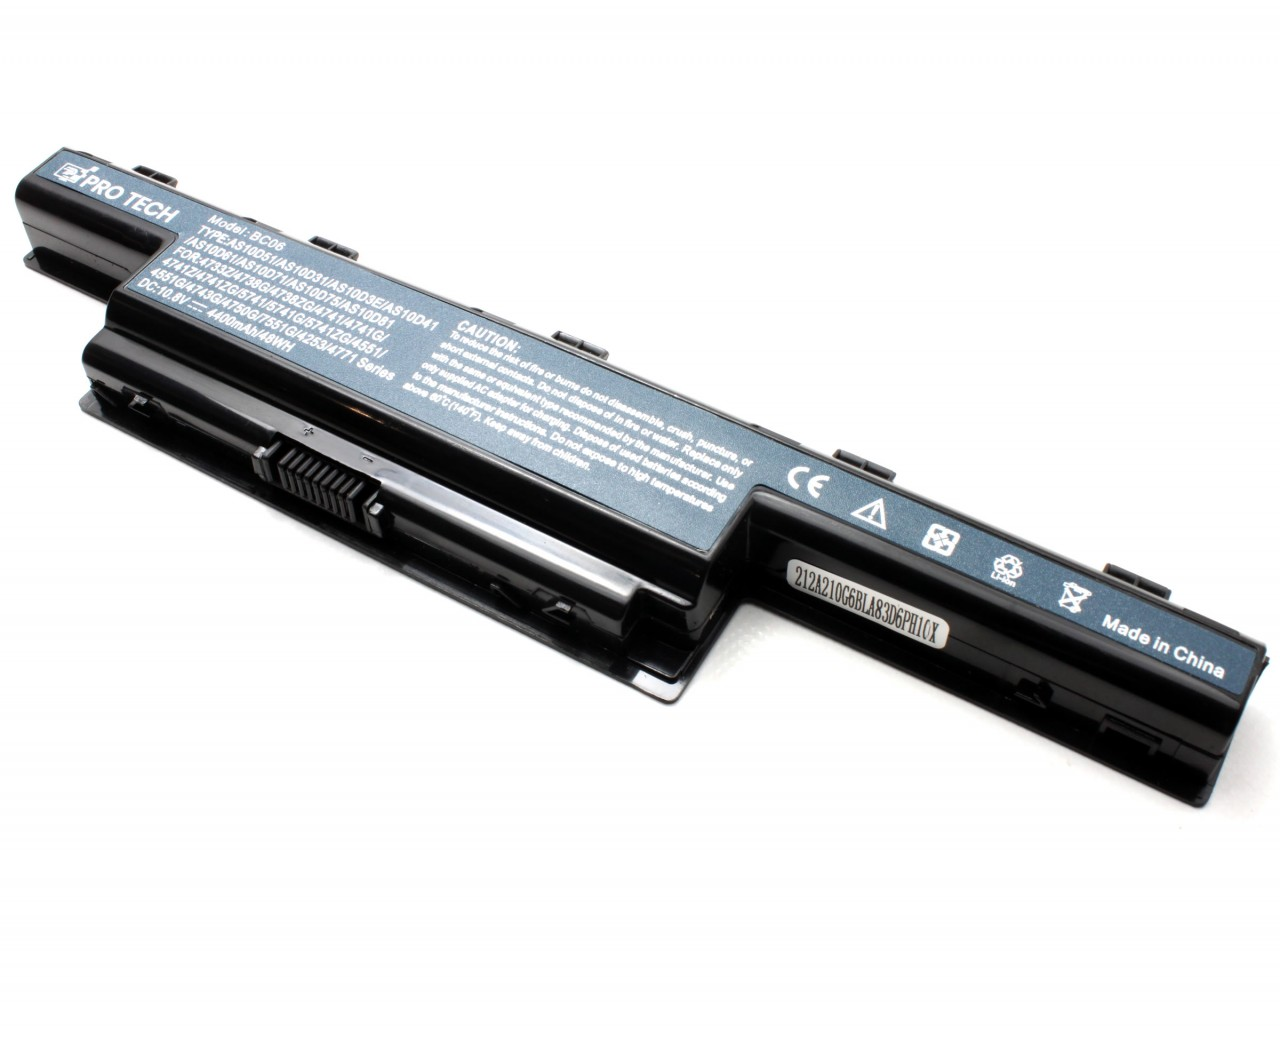 Baterie Packard Bell EasyNote TM83 9 celule imagine powerlaptop.ro 2021